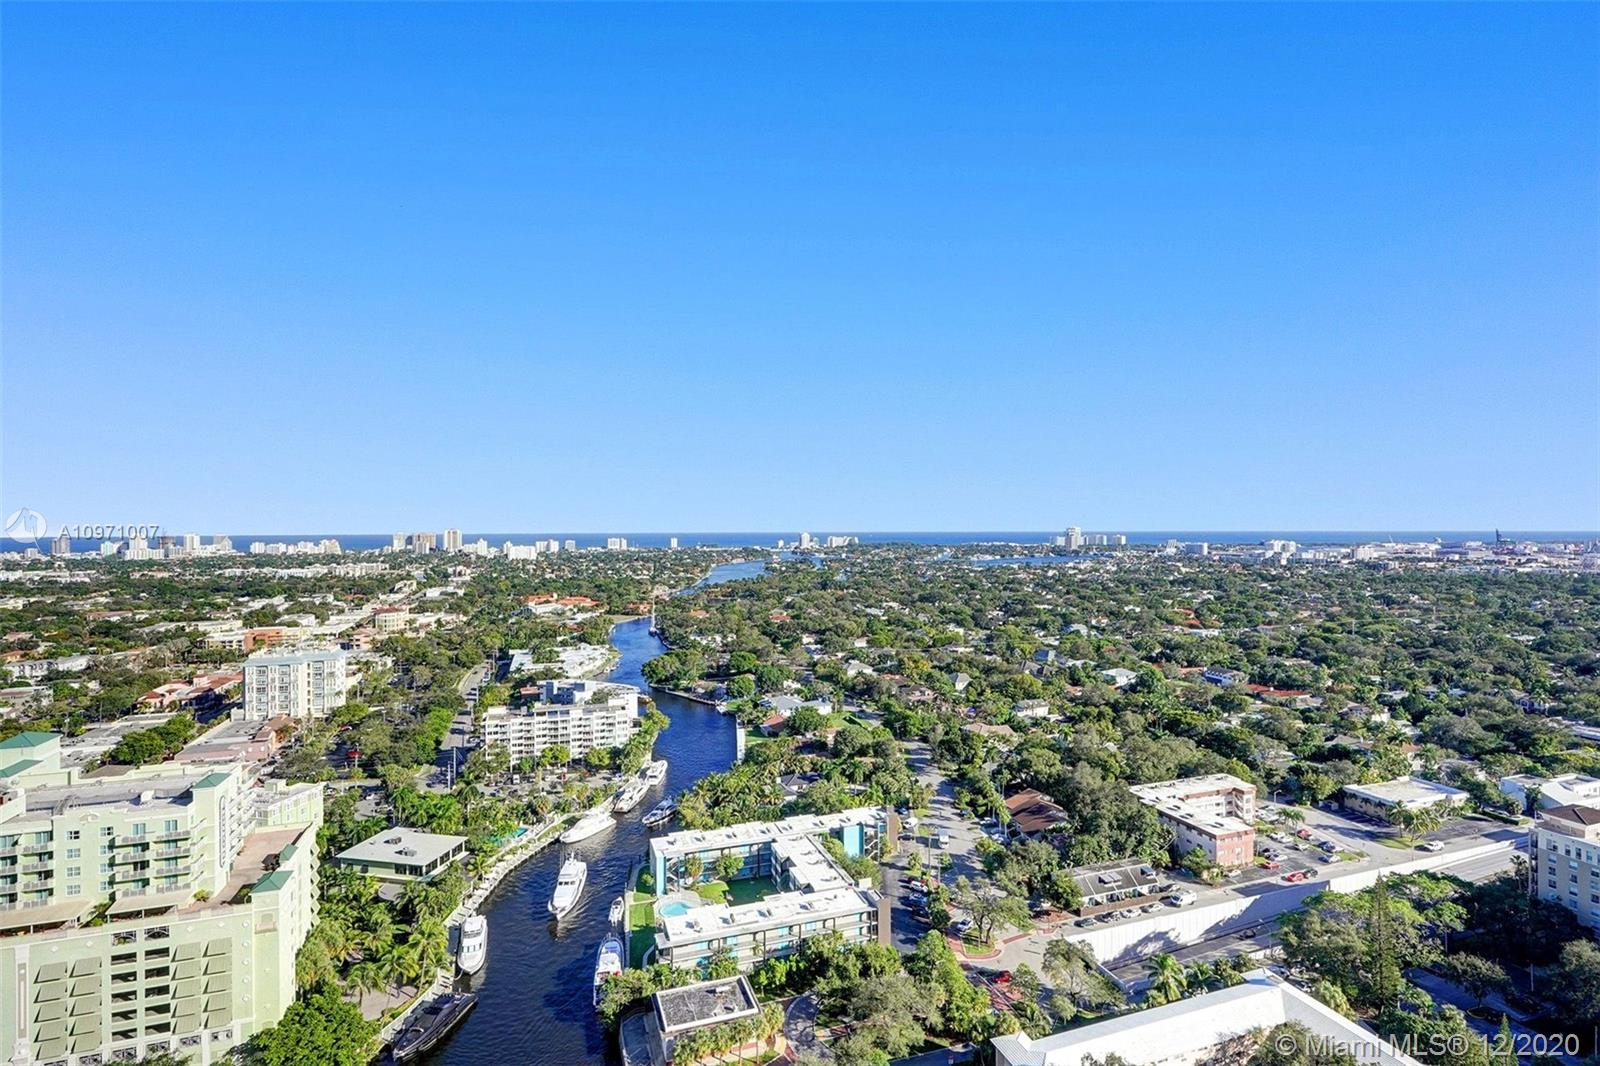 BREATHTAKING PANORAMIC VIEW OF INTRACOASTAL , OCEAN AND FORT LAUDERDALE WATERWAYS. A REAL PLEASURE .HUGE WRAPAROUND TERRACE TO ENJOY THAT VIEW. LUXURY BUILDING IN THE HEART OF LAS OLAS. WALKING TO RESTAURANTS AND BIKING TO THE BEACH. 2 BEDROOMS 2,5 BATH FORMAL DINING ROOM COMFORTABLE LIVING ROOM WITH NATURAL LIGHT THROUGHOUT, POGGENPOHL KITCHEN WITH TOP OF THE LINE STAINLESS STEEL APPLIANCES , SUBZERO REFRIGERATOR, DOUBLE OVEN , INDUCTION COOKTOP AND  NEW WINE CELLAR. BREAKFAST NOOK OVERLOOKING THE OCEAN.PRIVATE HOME OFFICE WITH ROOM FOR A TWIN SIZE BED. FULL SIZE LAUNDRY ROOM WITH MAYTAG BRAND NEW WASHER AND DRYER.IMPACT WINDOWS. NEW A/C. BATHROOM COMPLETELY REMODELED. BEST CORNER BEST VIEW BEST PRICE.